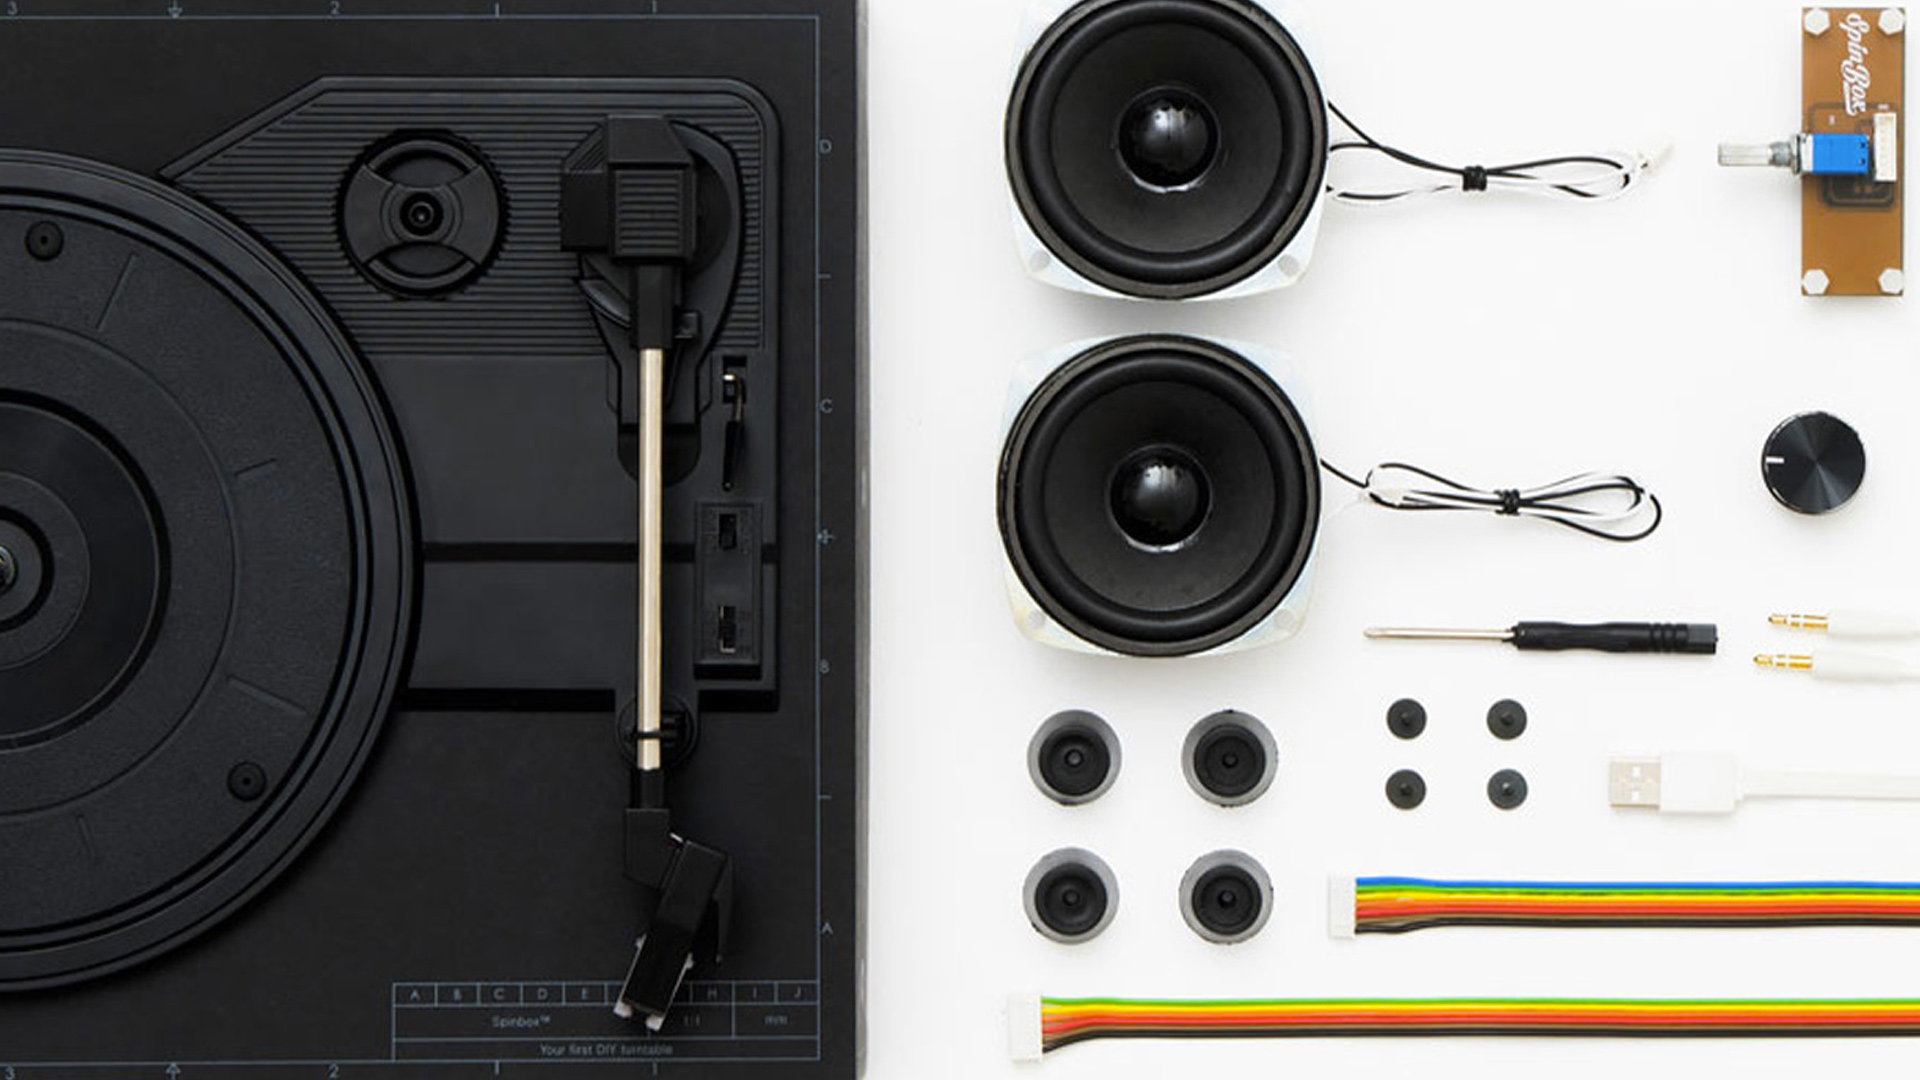 Spinbox-DIY-Build-Your-Own-Portable-Turntable-Scratcheverywhere-Movement